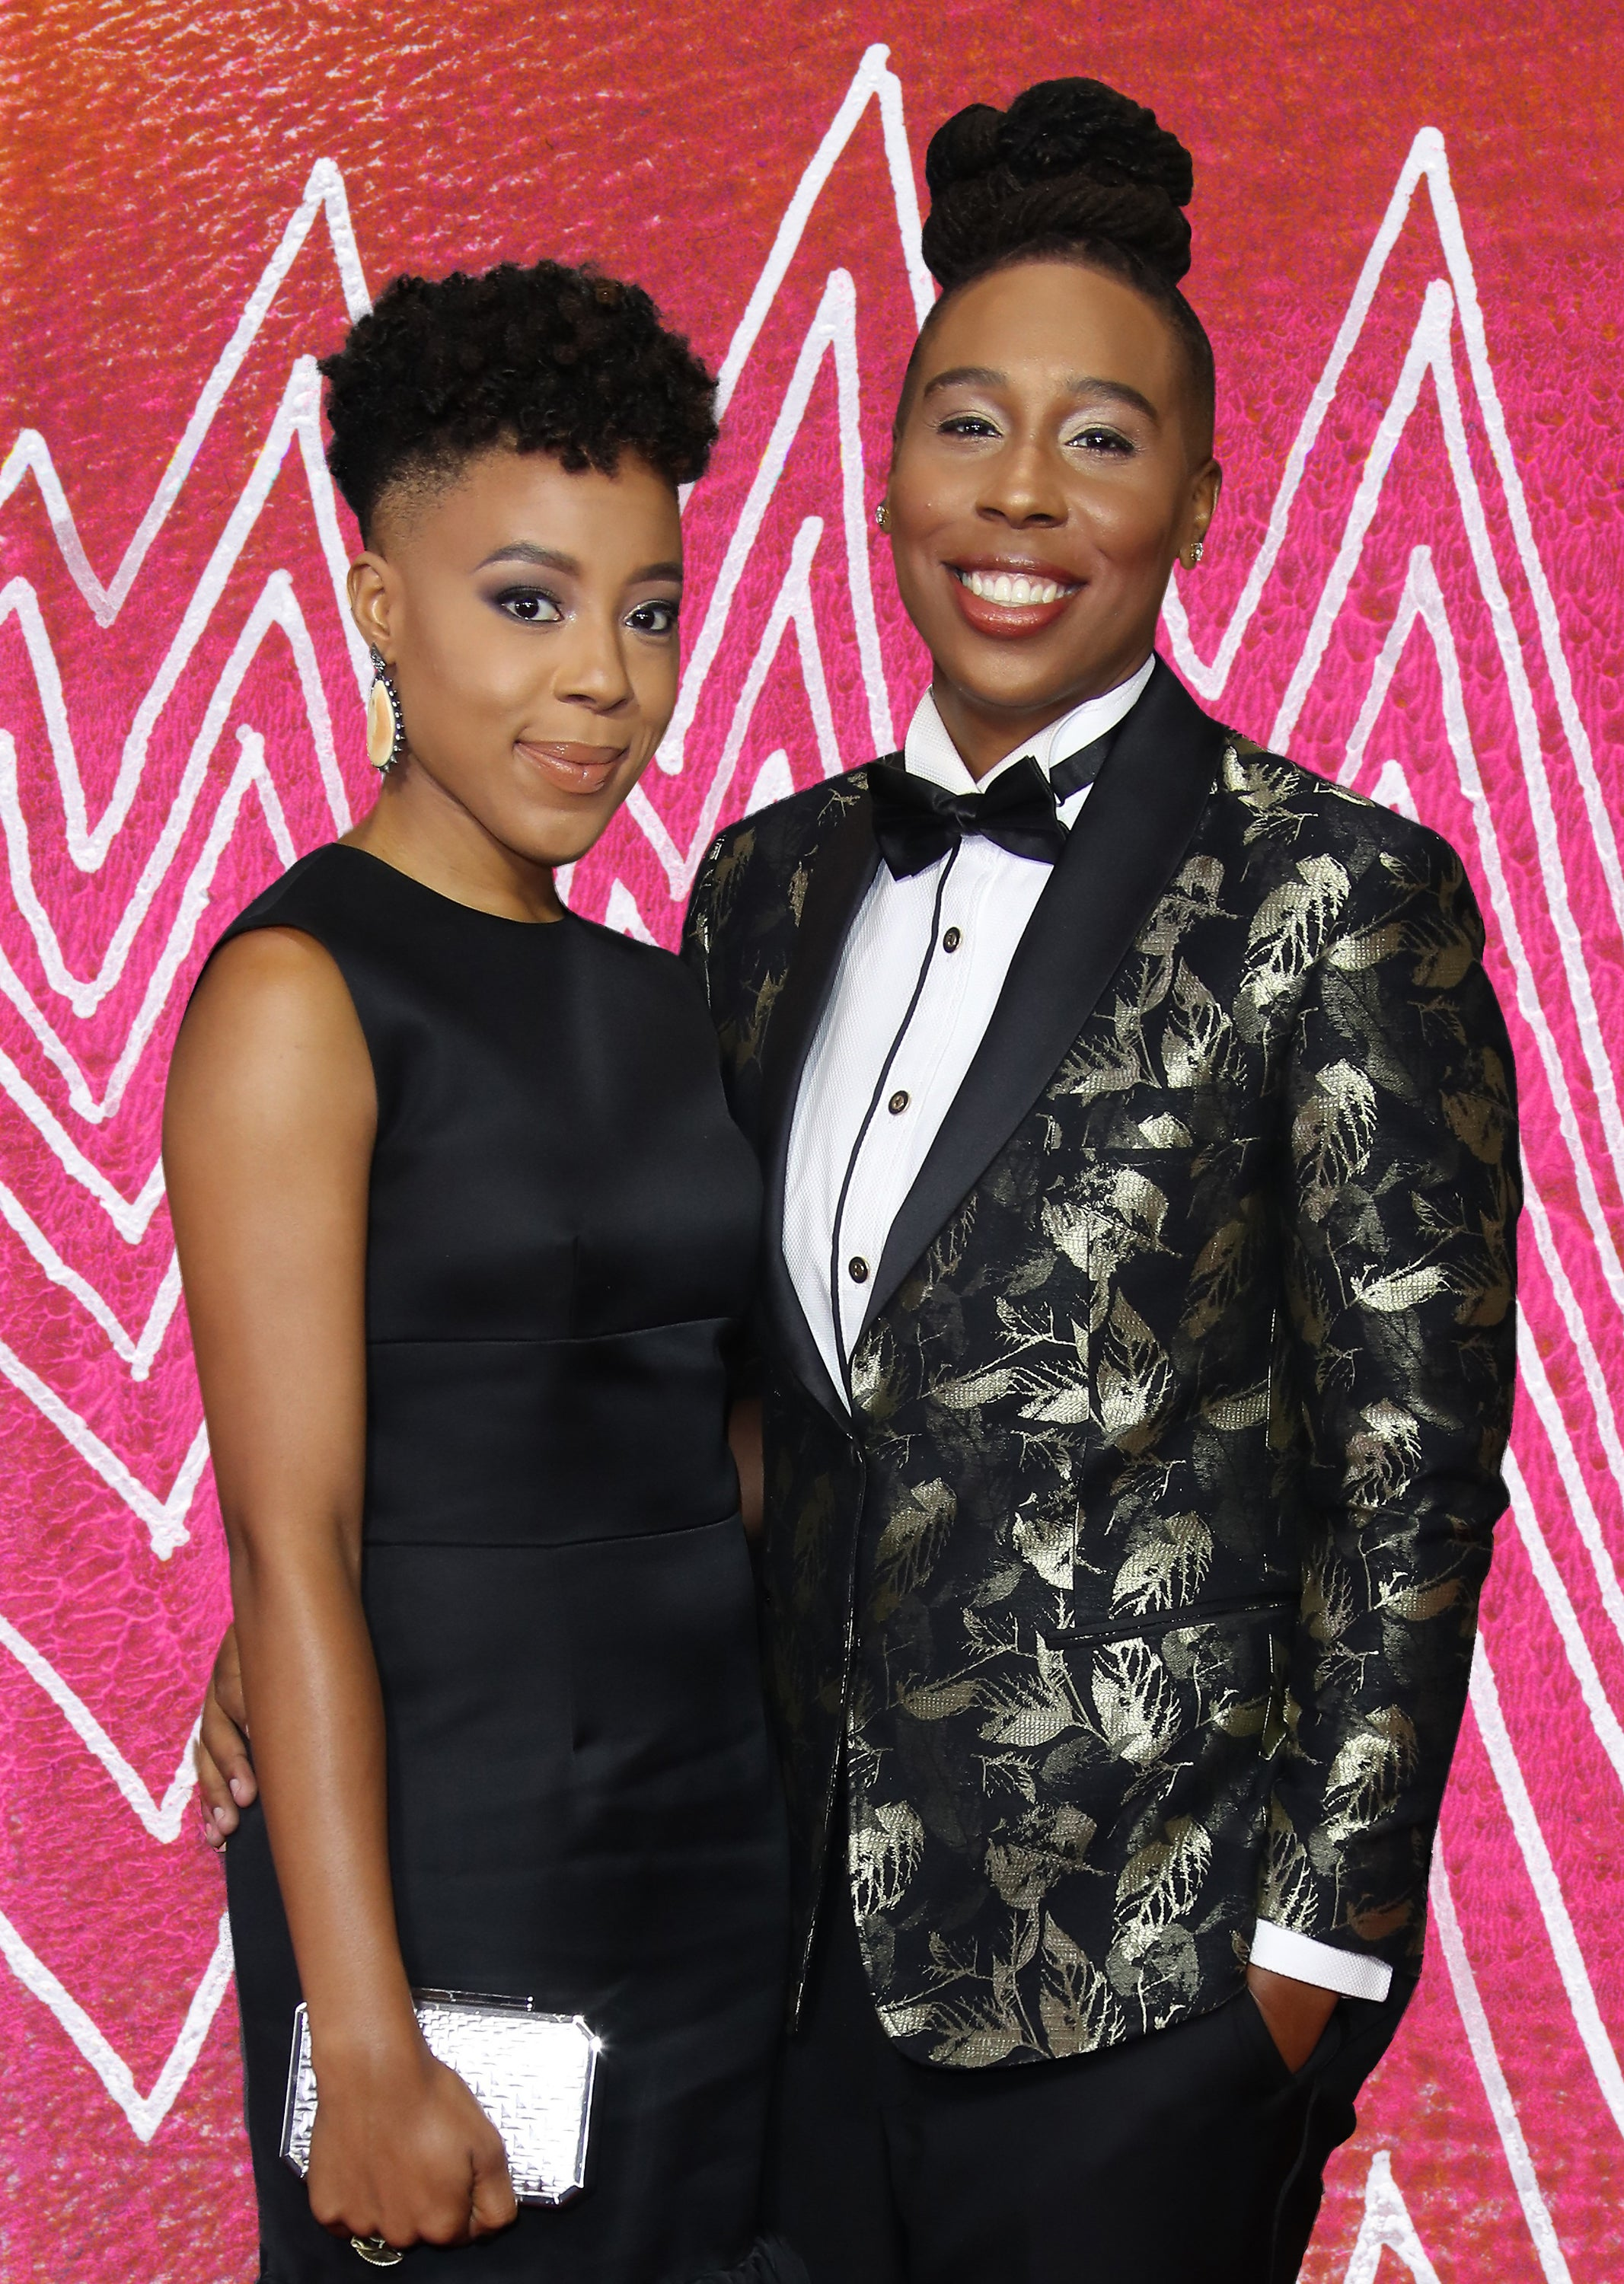 Lena Waithe Is Being Super Chill About Her Wedding Plans With Fiancée Alana Mayo